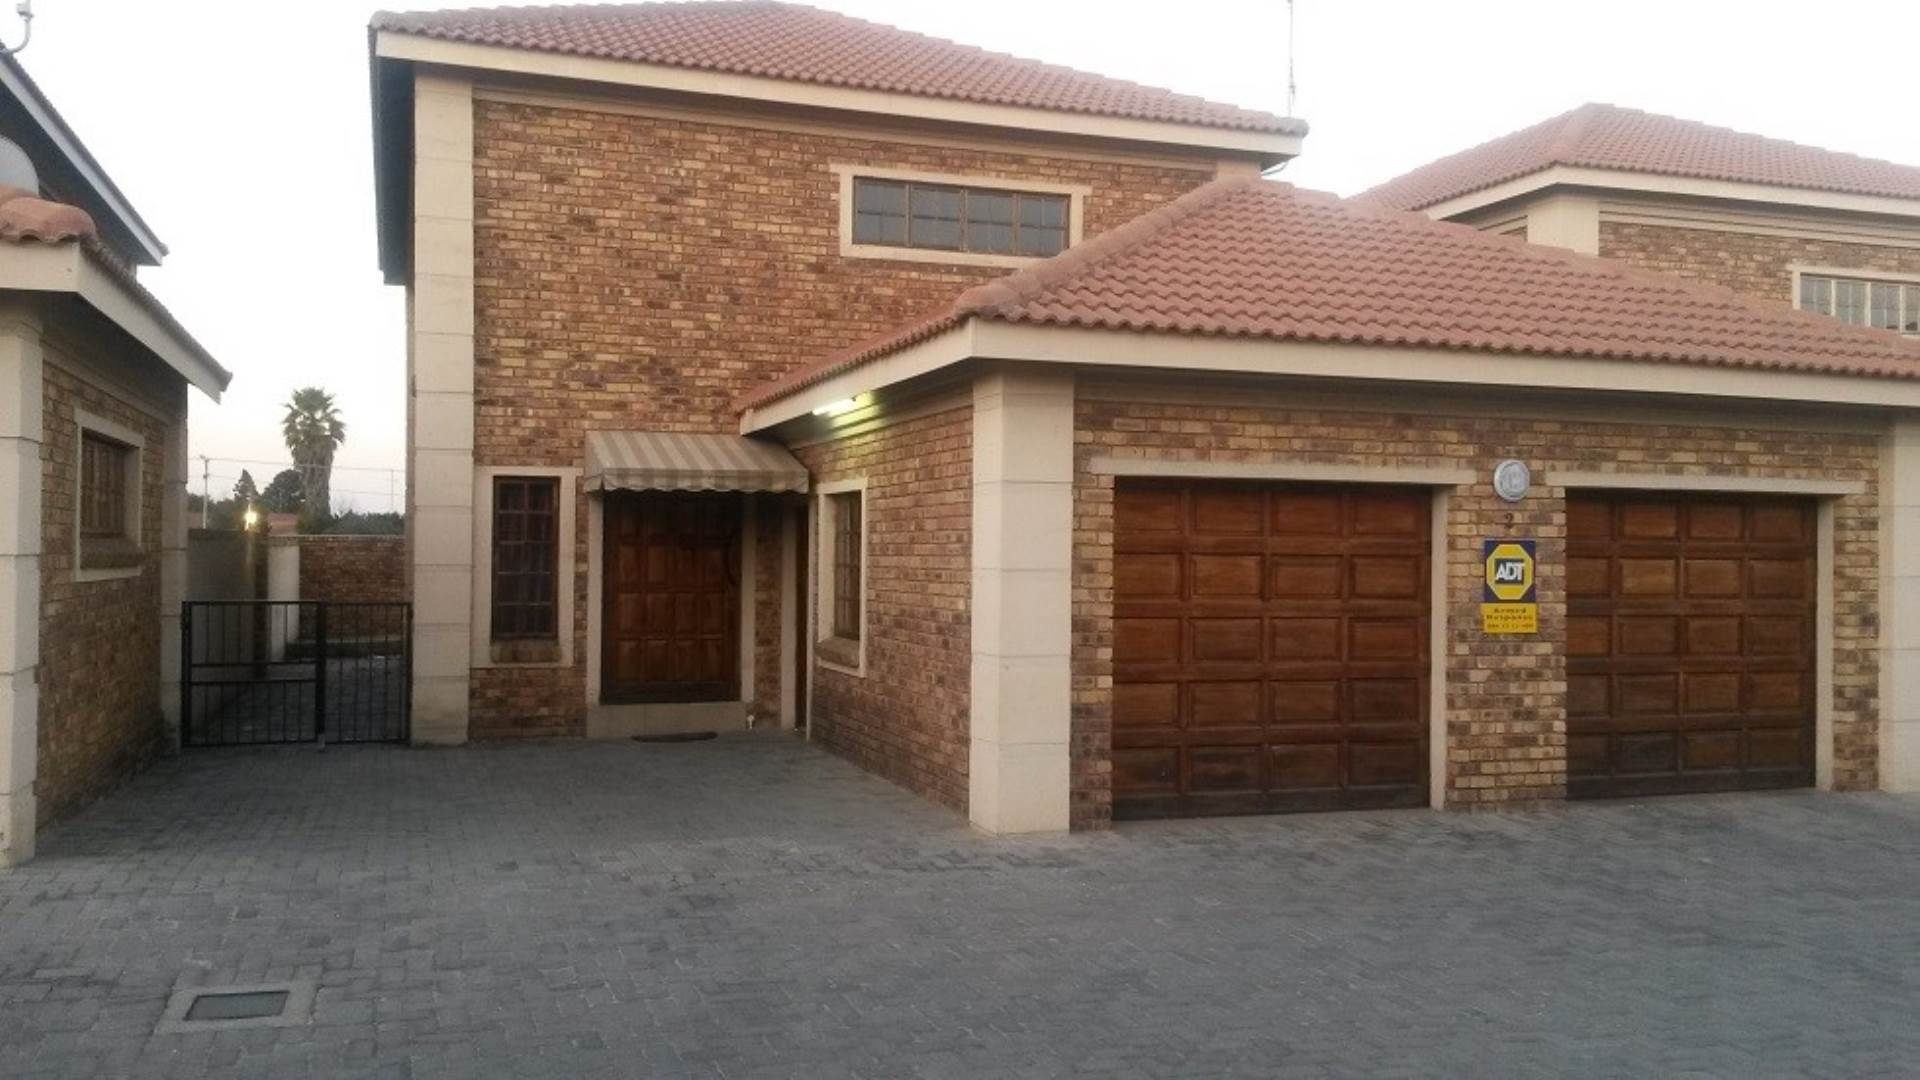 3 BedroomTownhouse For Sale In Eastvale